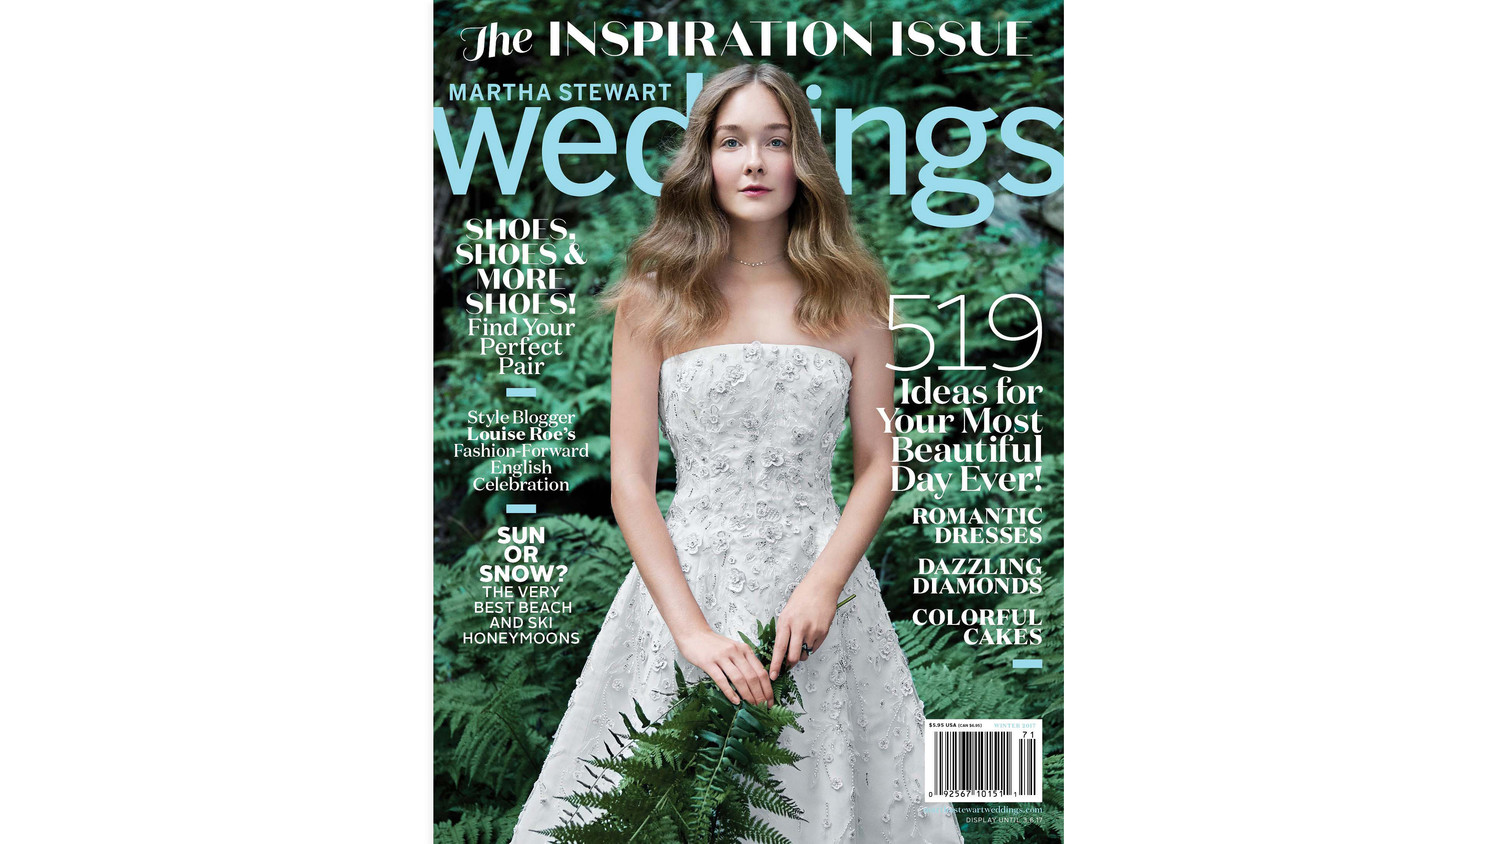 Martha Stewart Weddings: Get A First Look At Our Latest Winter Issue!